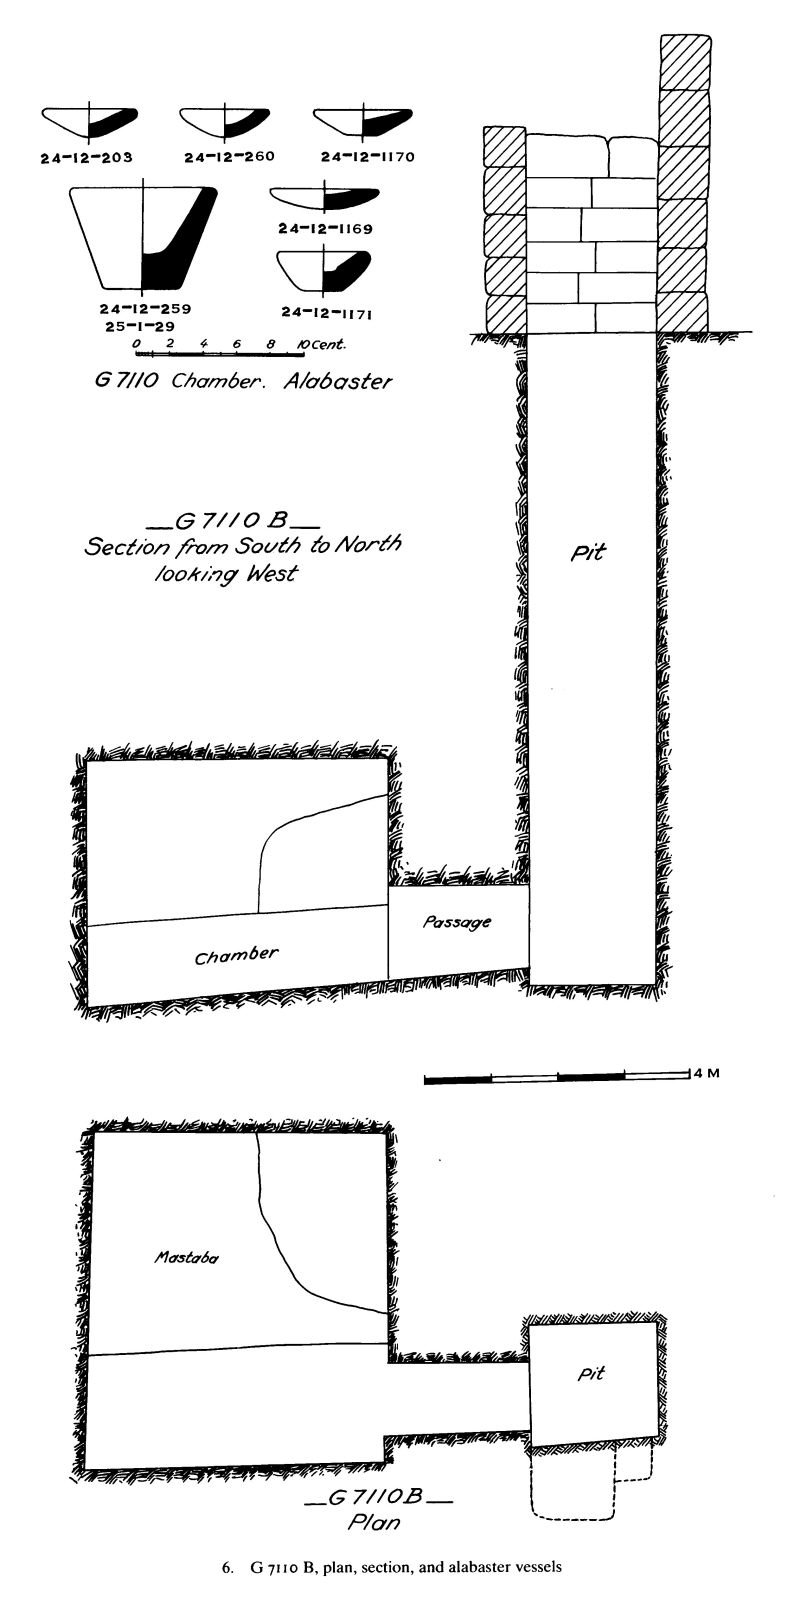 Maps and plans: G 7110, Shaft B; and G 7110: vessels, alabaster